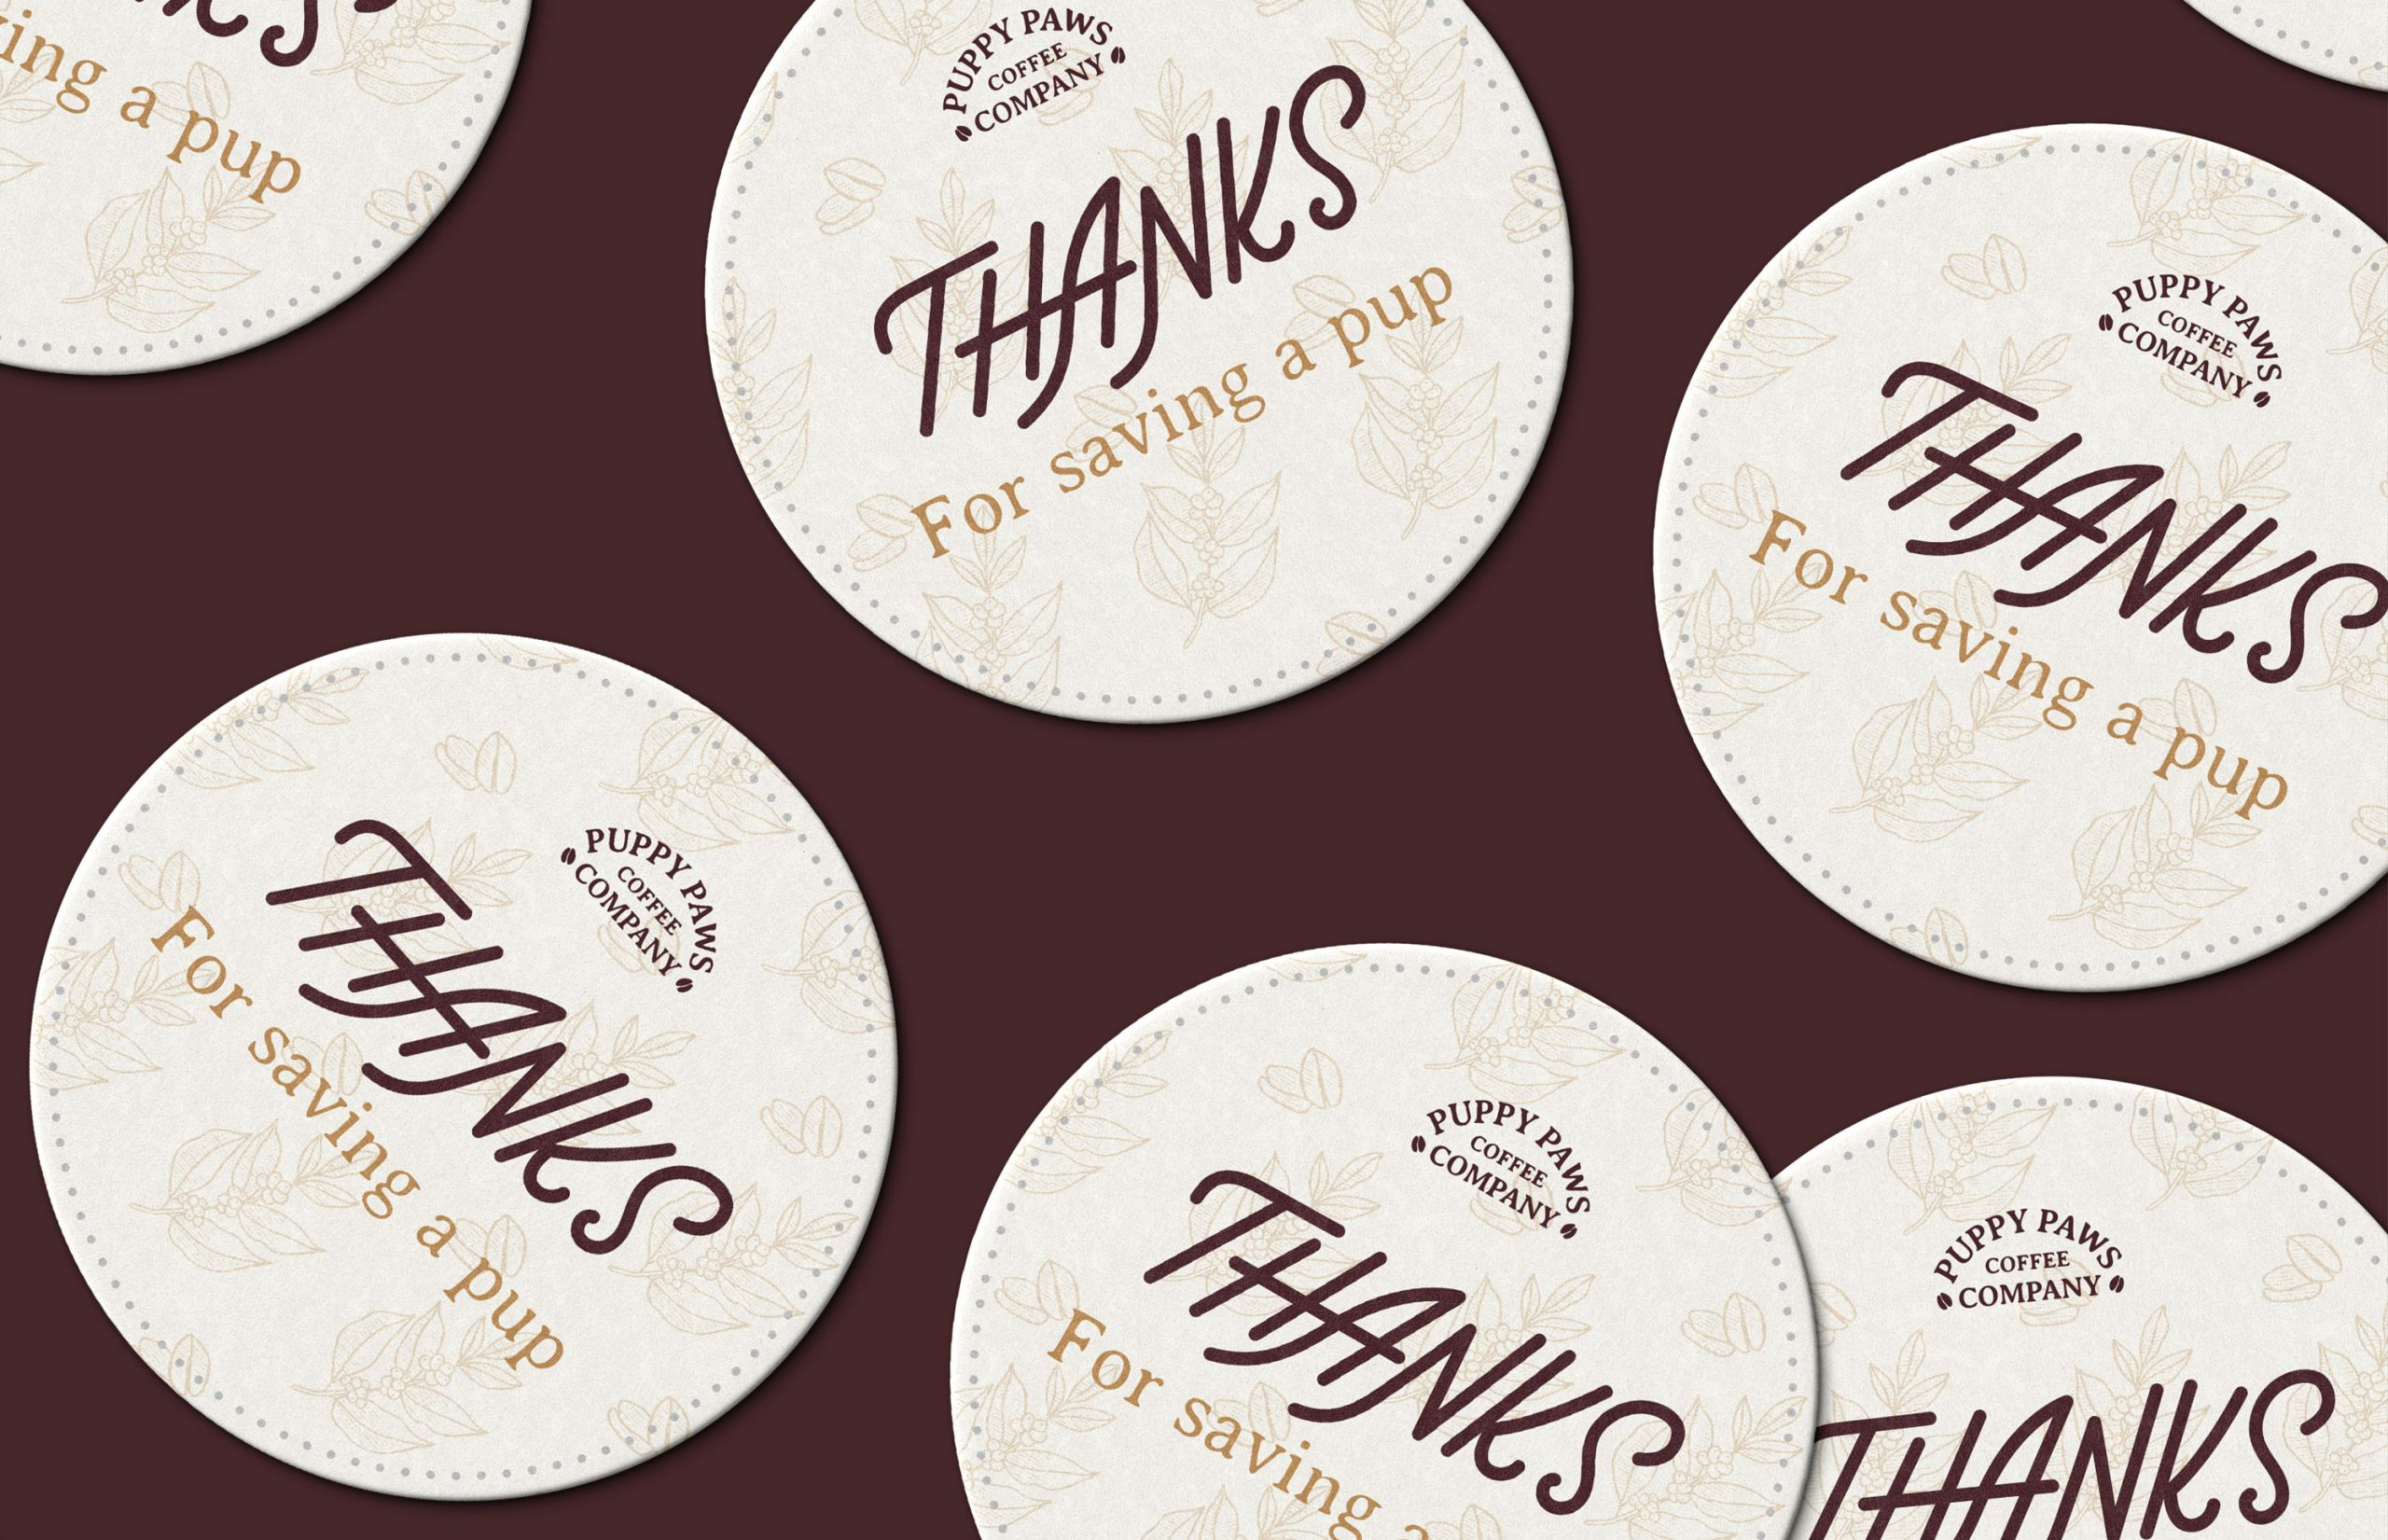 coasters that say Thanks for saving a pup